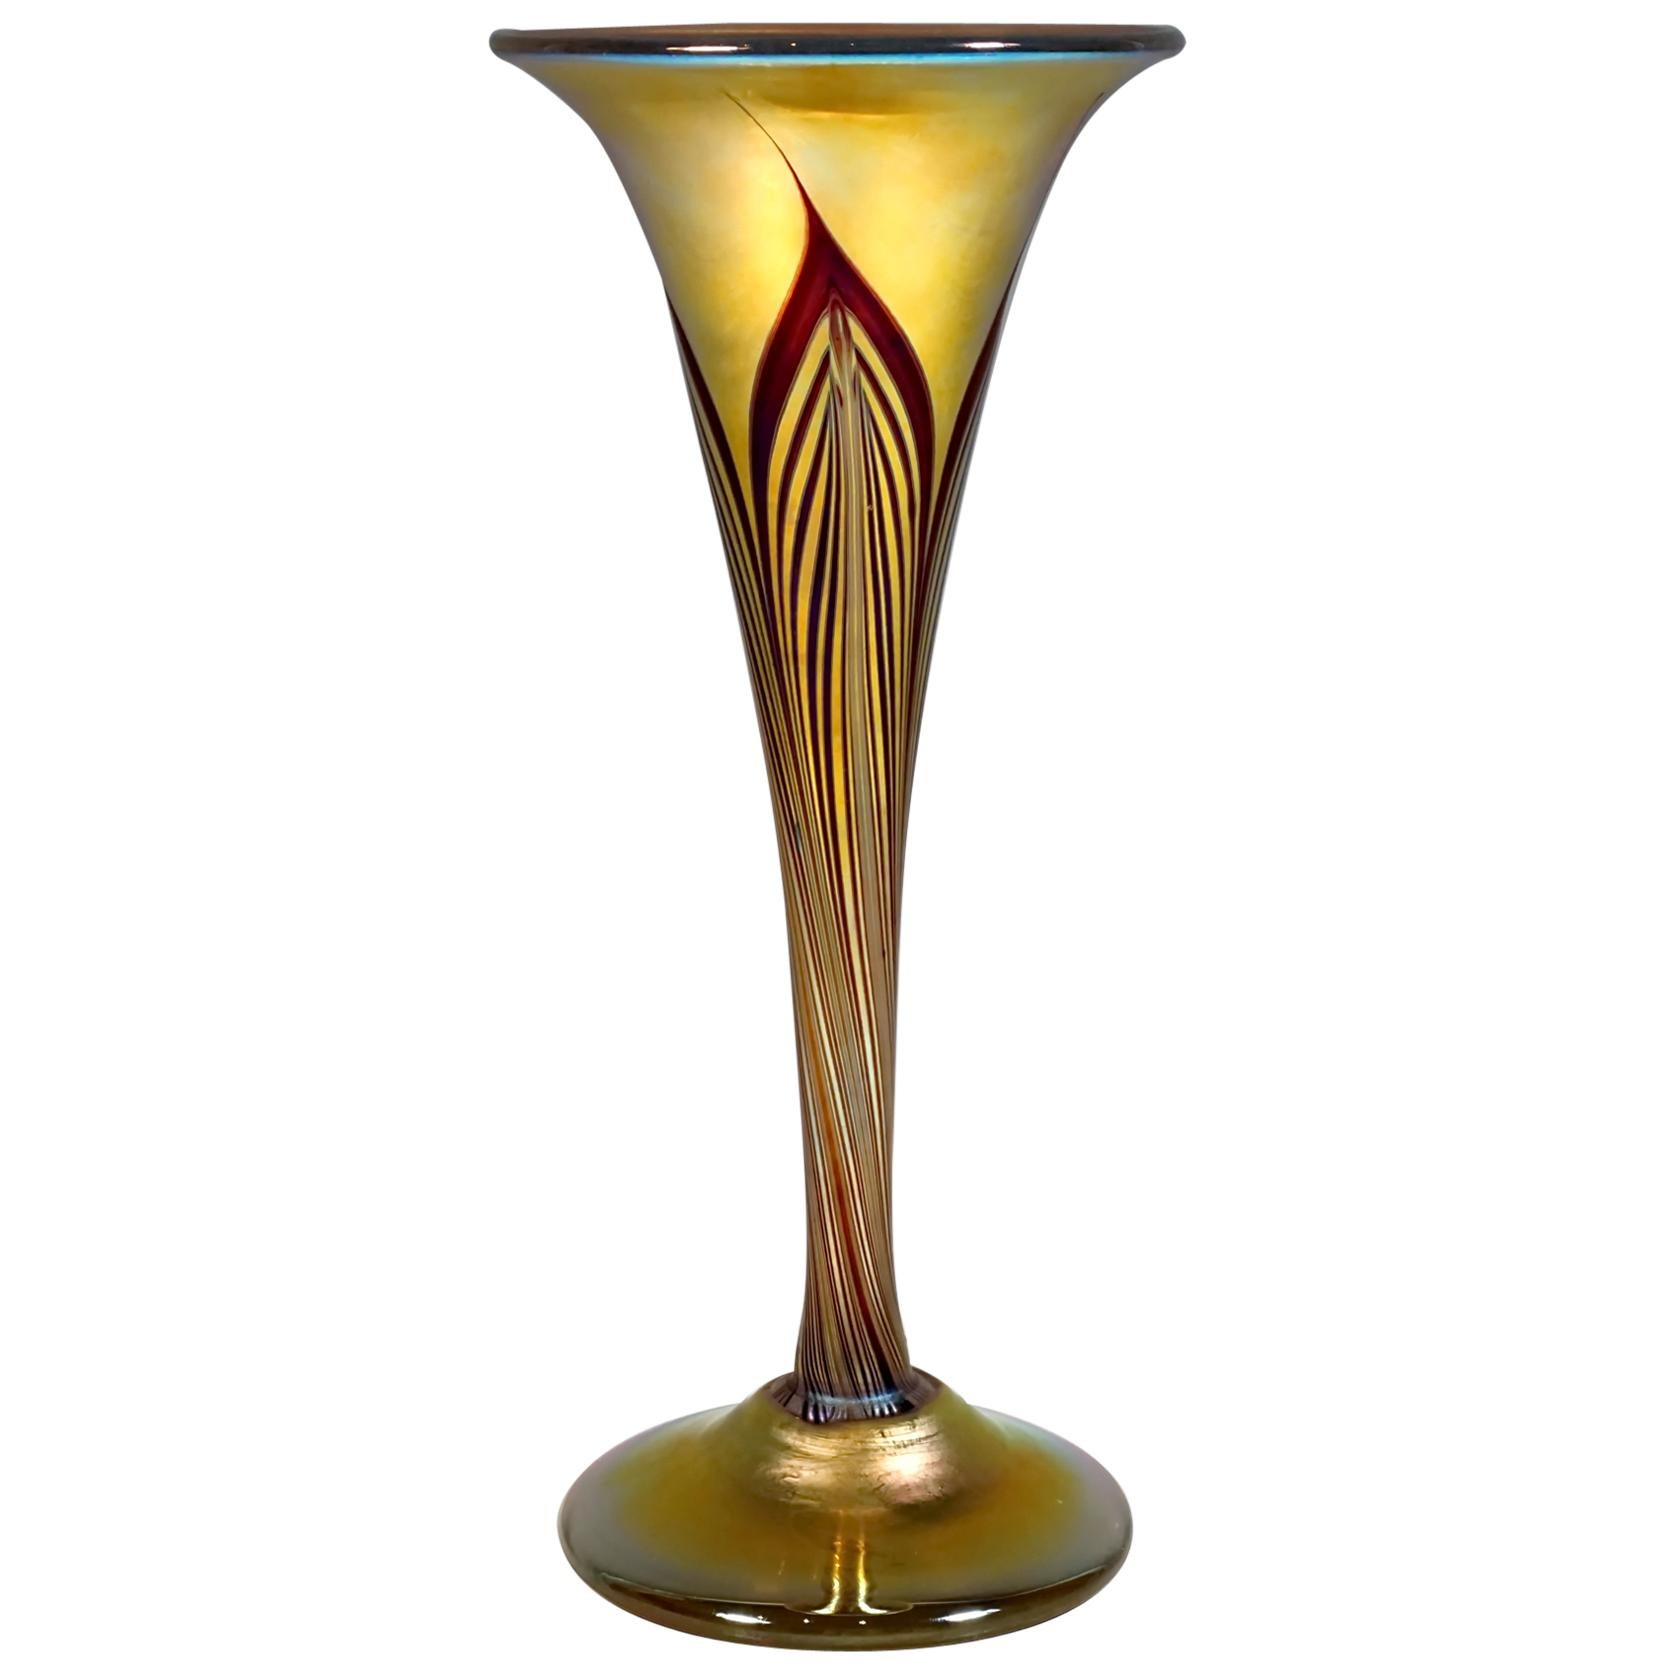 Art Nouveau Gold Favrile Glass Vase, L.C. Tiffany, New York, Around 1896